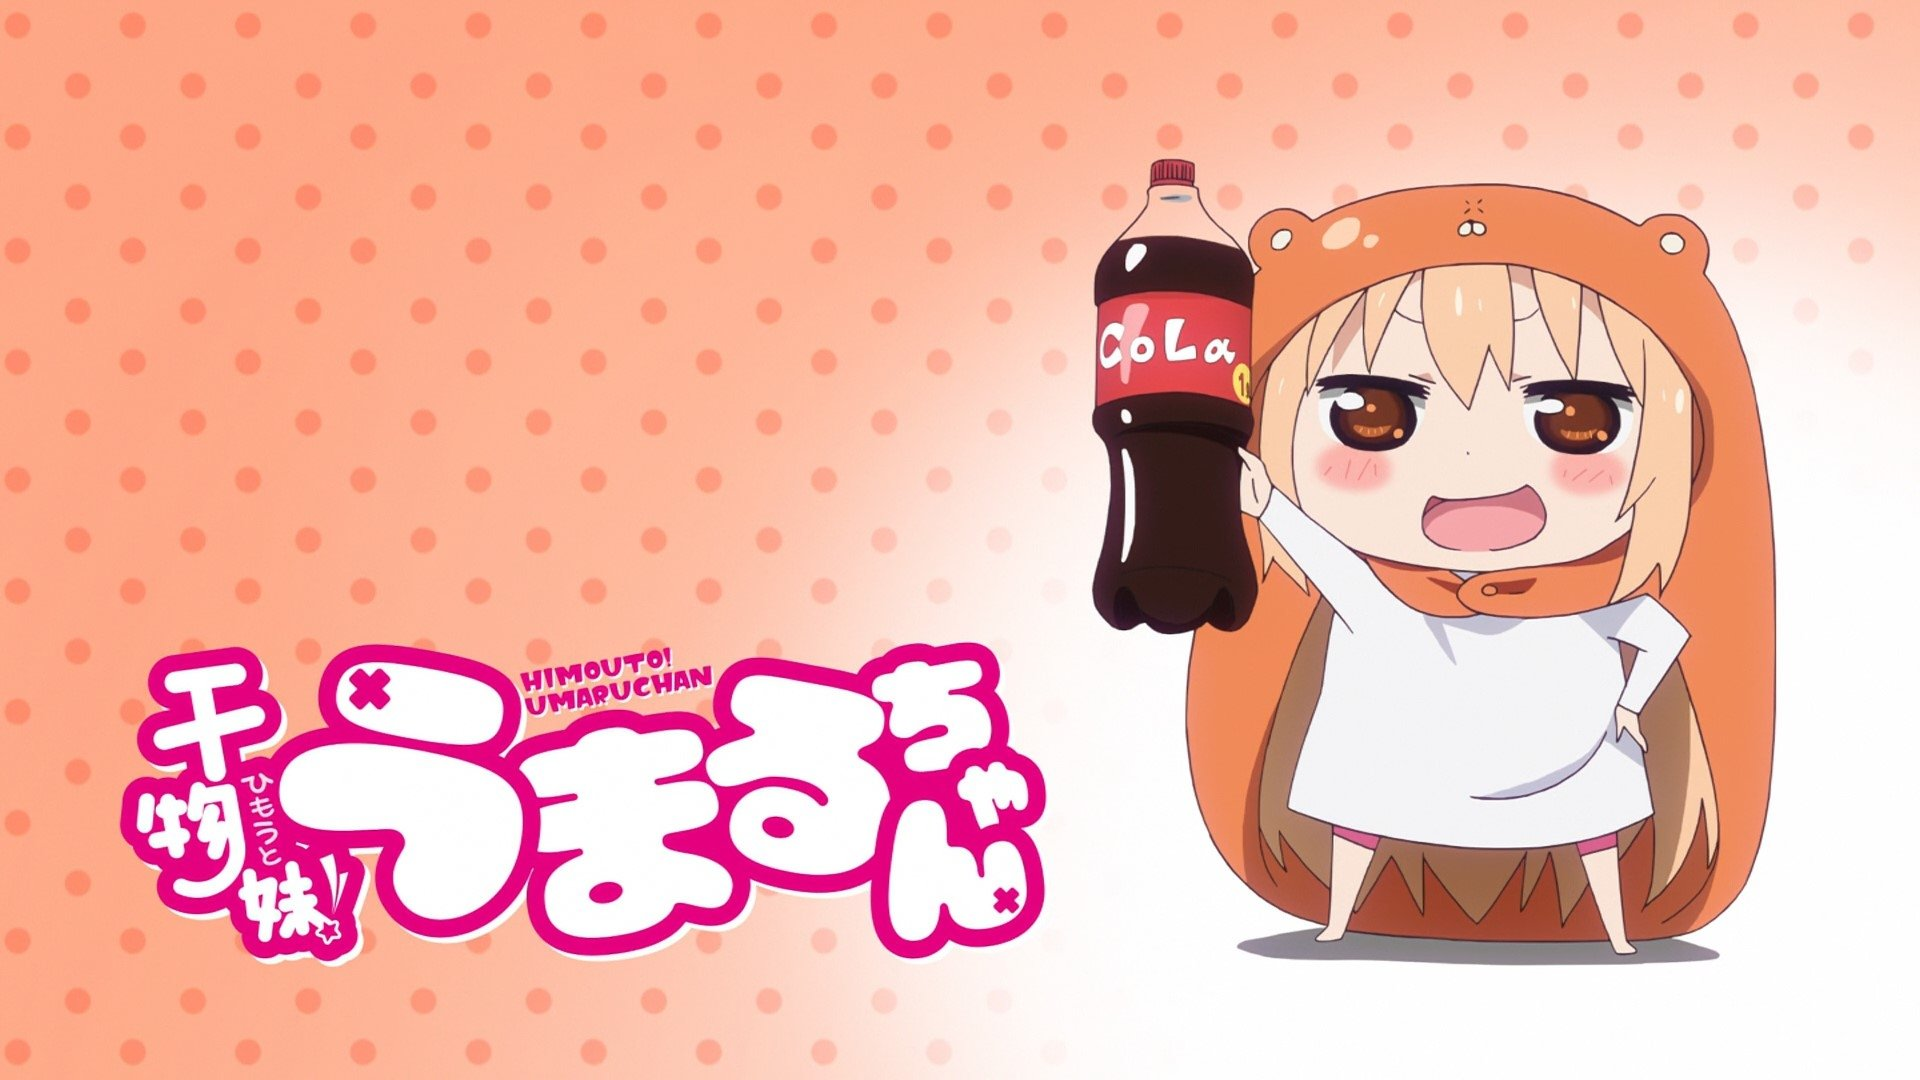 Download full hd 1920x1080 Himouto! Umaru-chan PC wallpaper ID:242363 for free